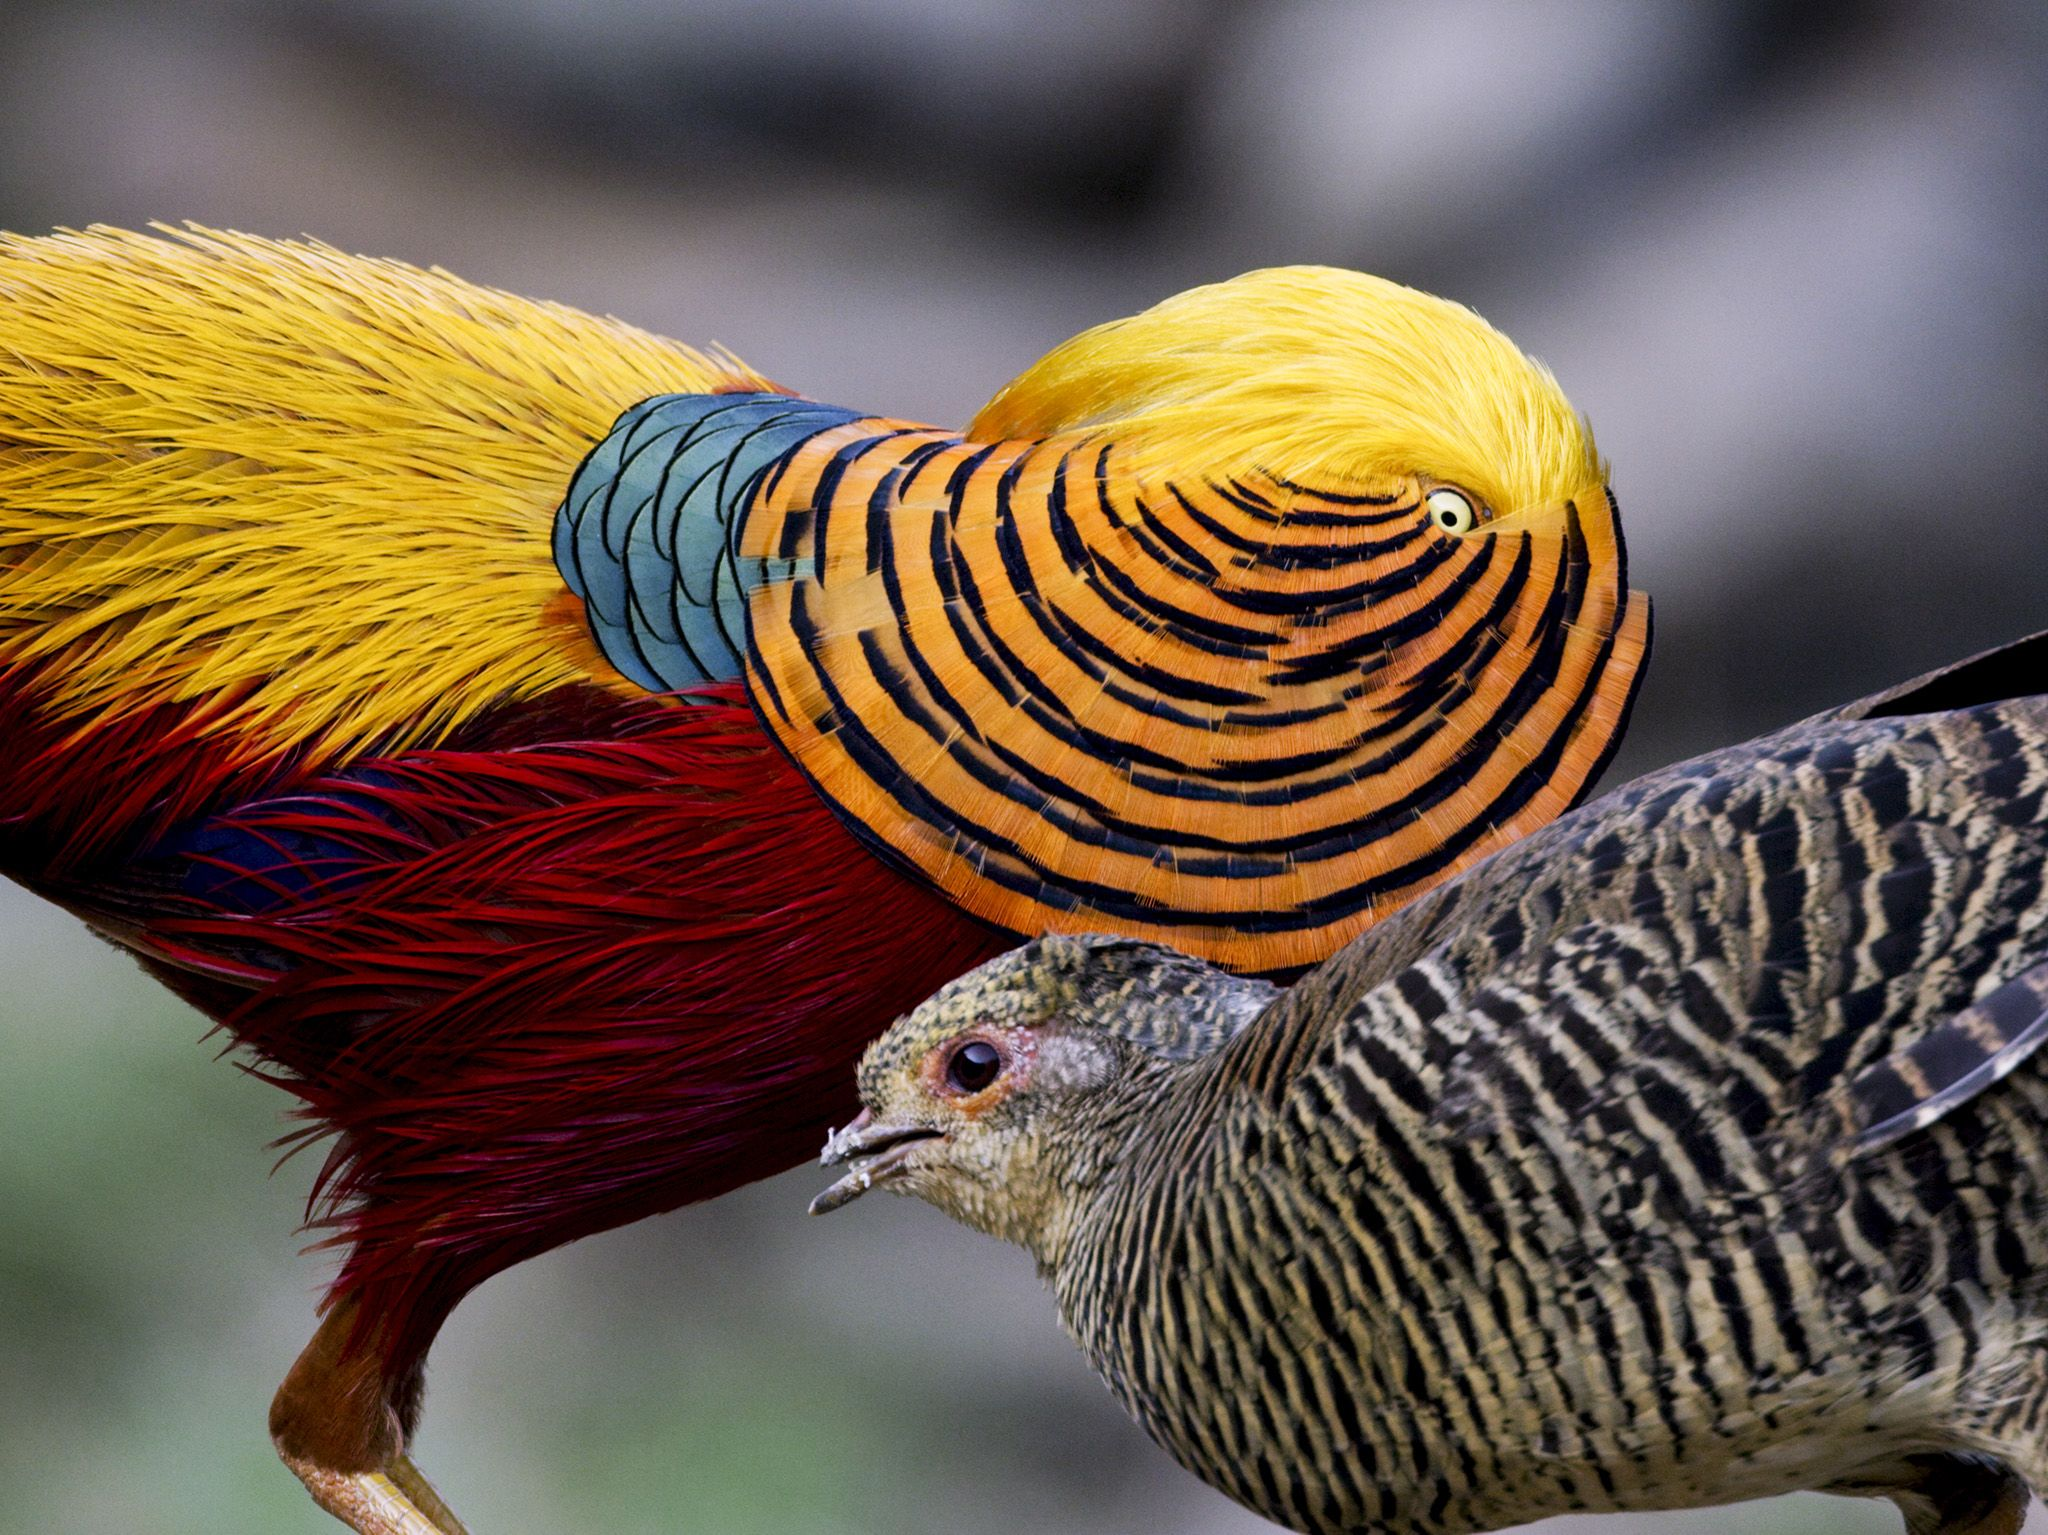 Yangxian County, Shaanxi Province, China: Male and female Golden Pheasants. Male showing feather... [Photo of the day - اکتوبر 2019]